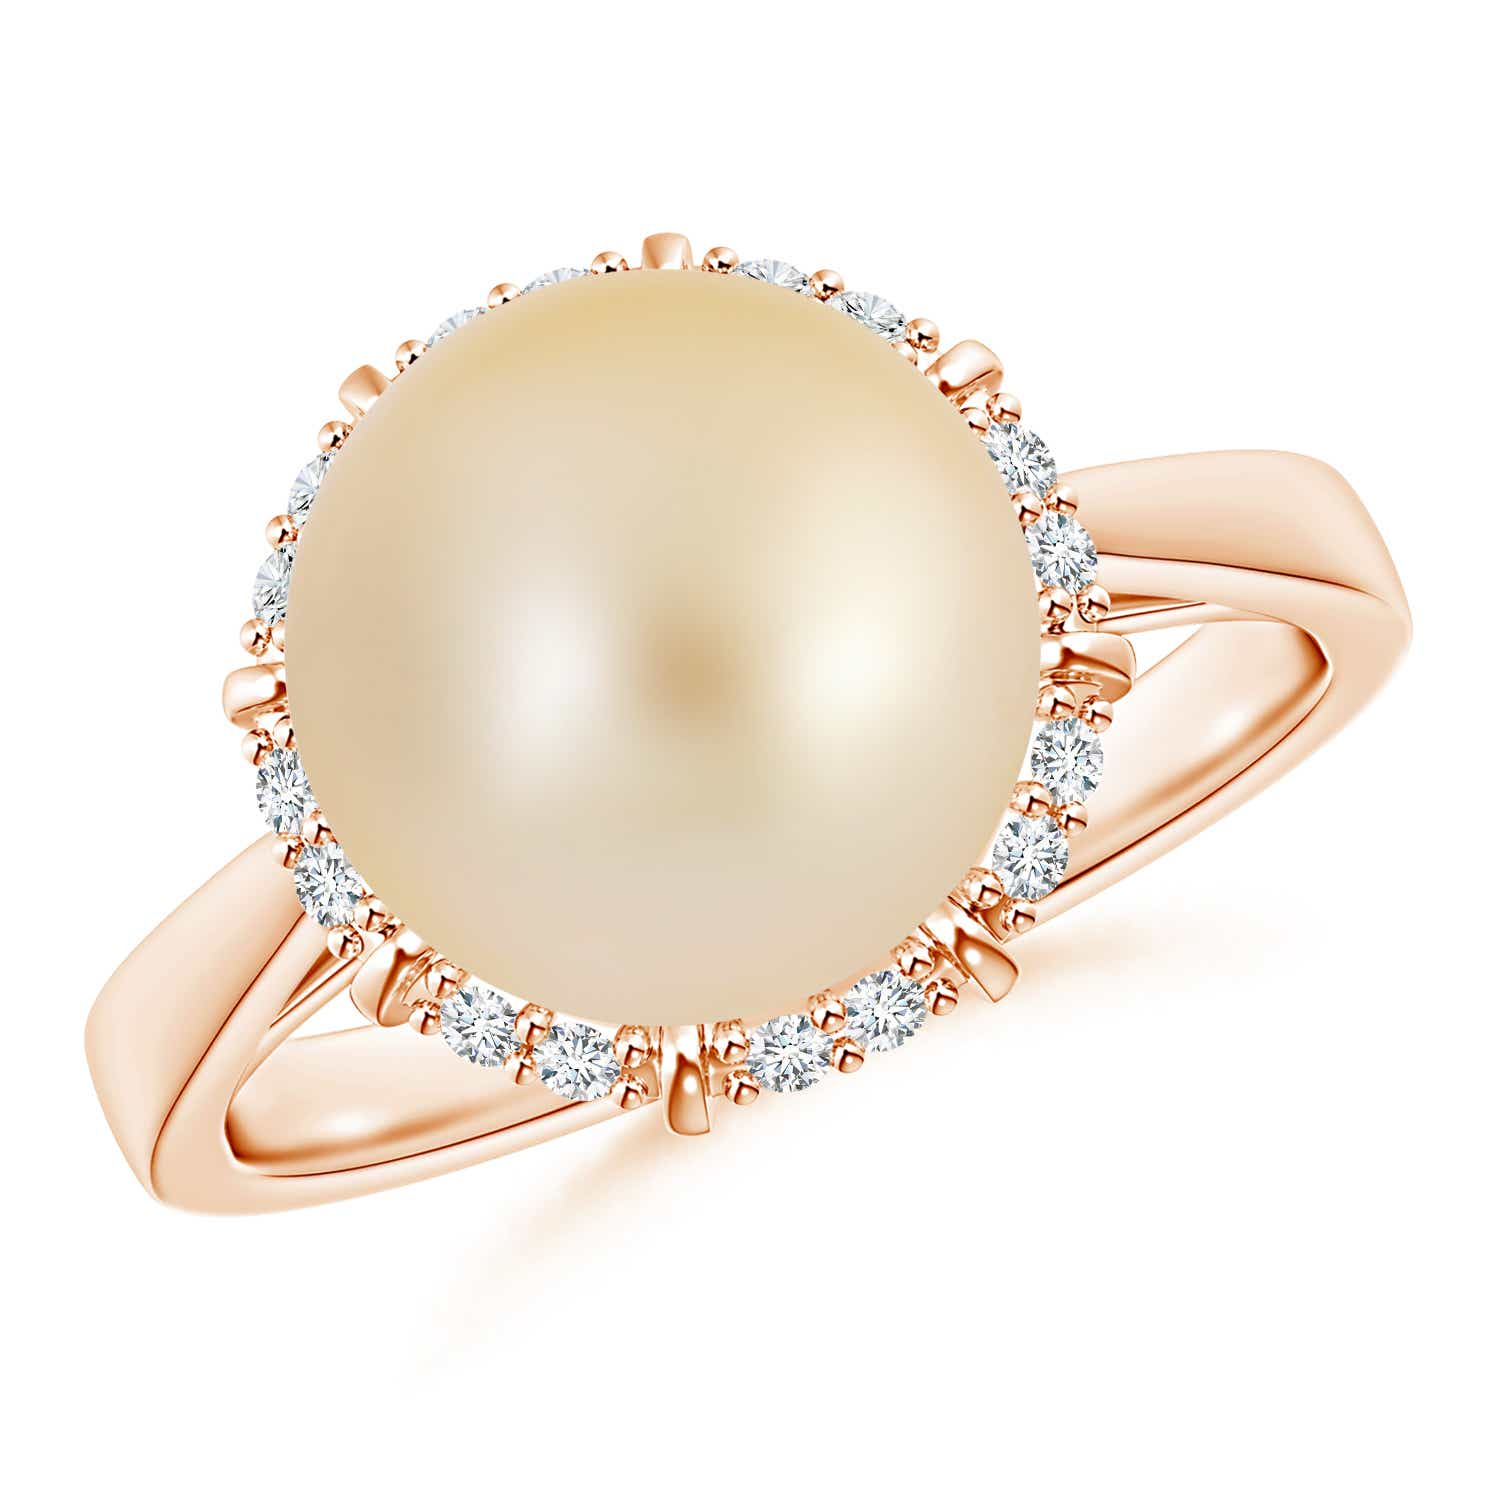 Angara Victorian Style Golden South Sea Cultured Pearl Ring DpWAb1Er